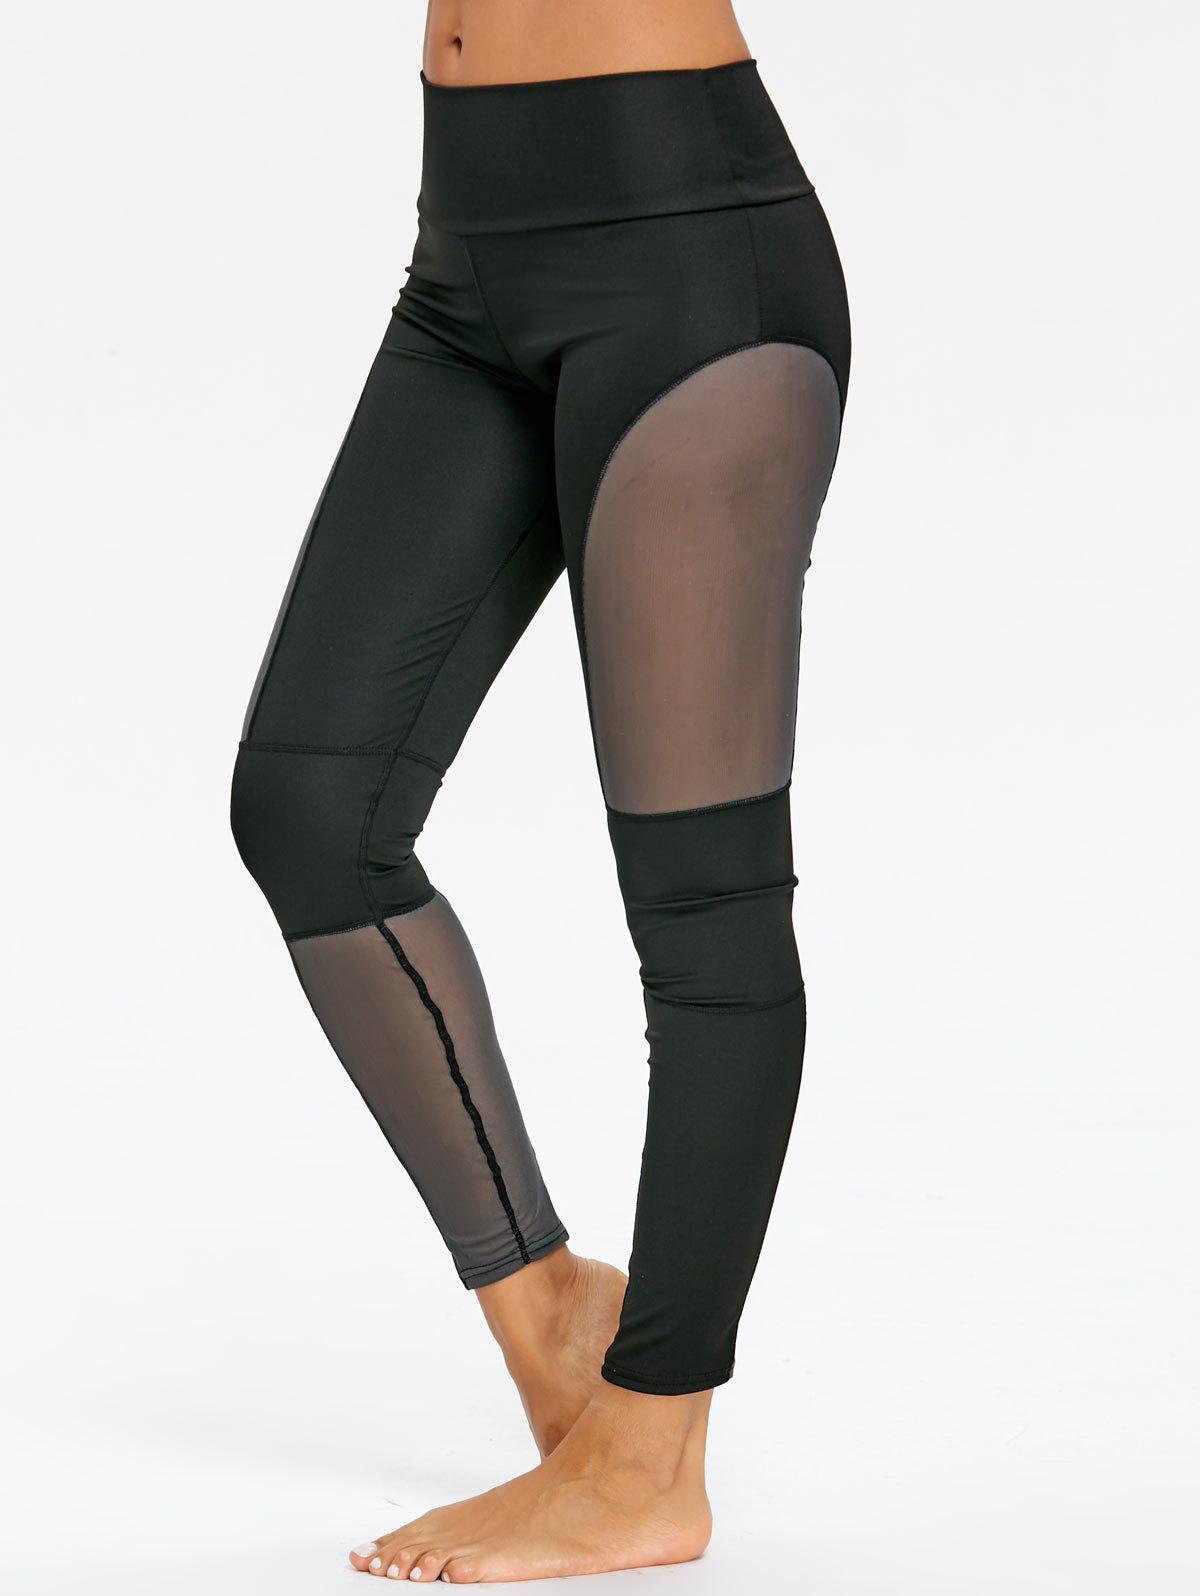 Sports See Through Mesh Panel Leggings maytoni arm033 01 bl